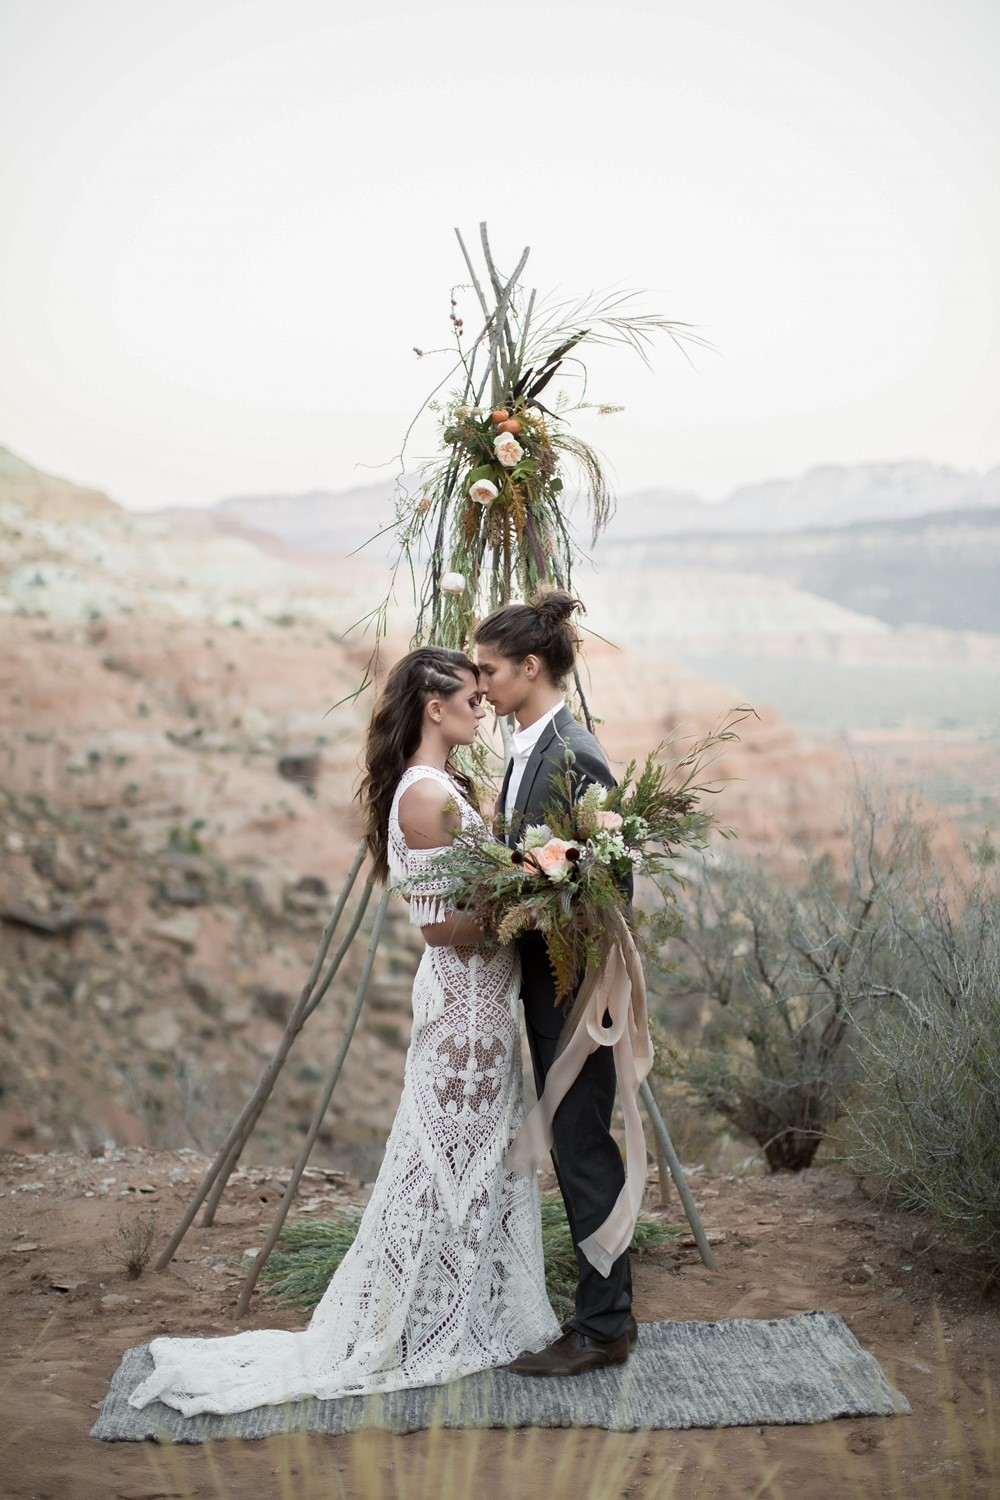 zion wedding ceremony backdrop